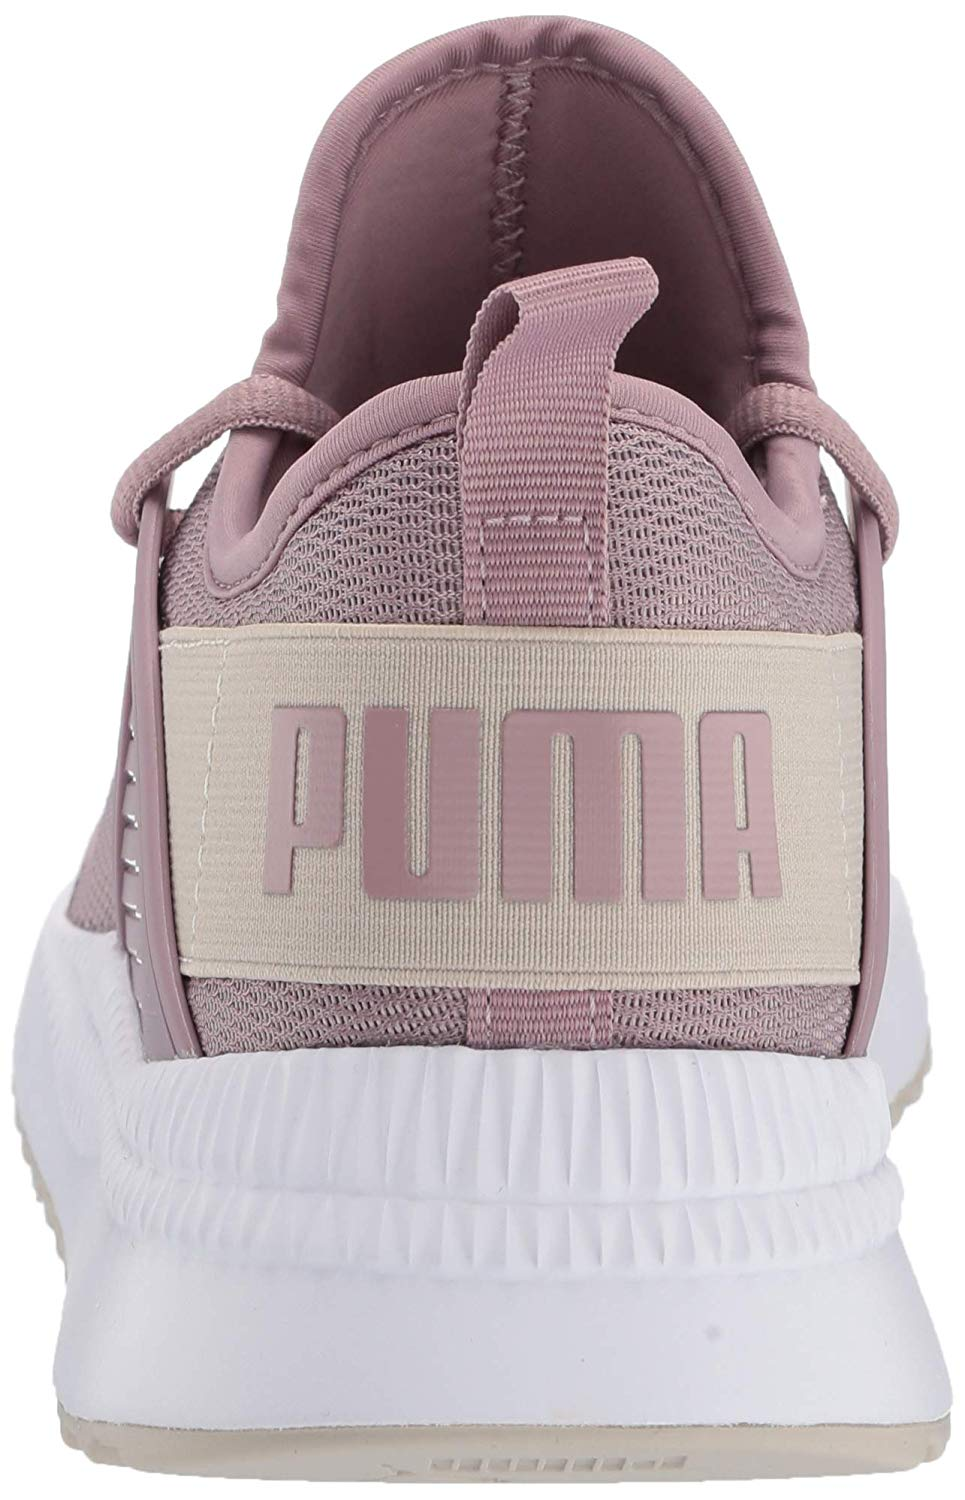 Puma pacer next cage sneaker online online europe